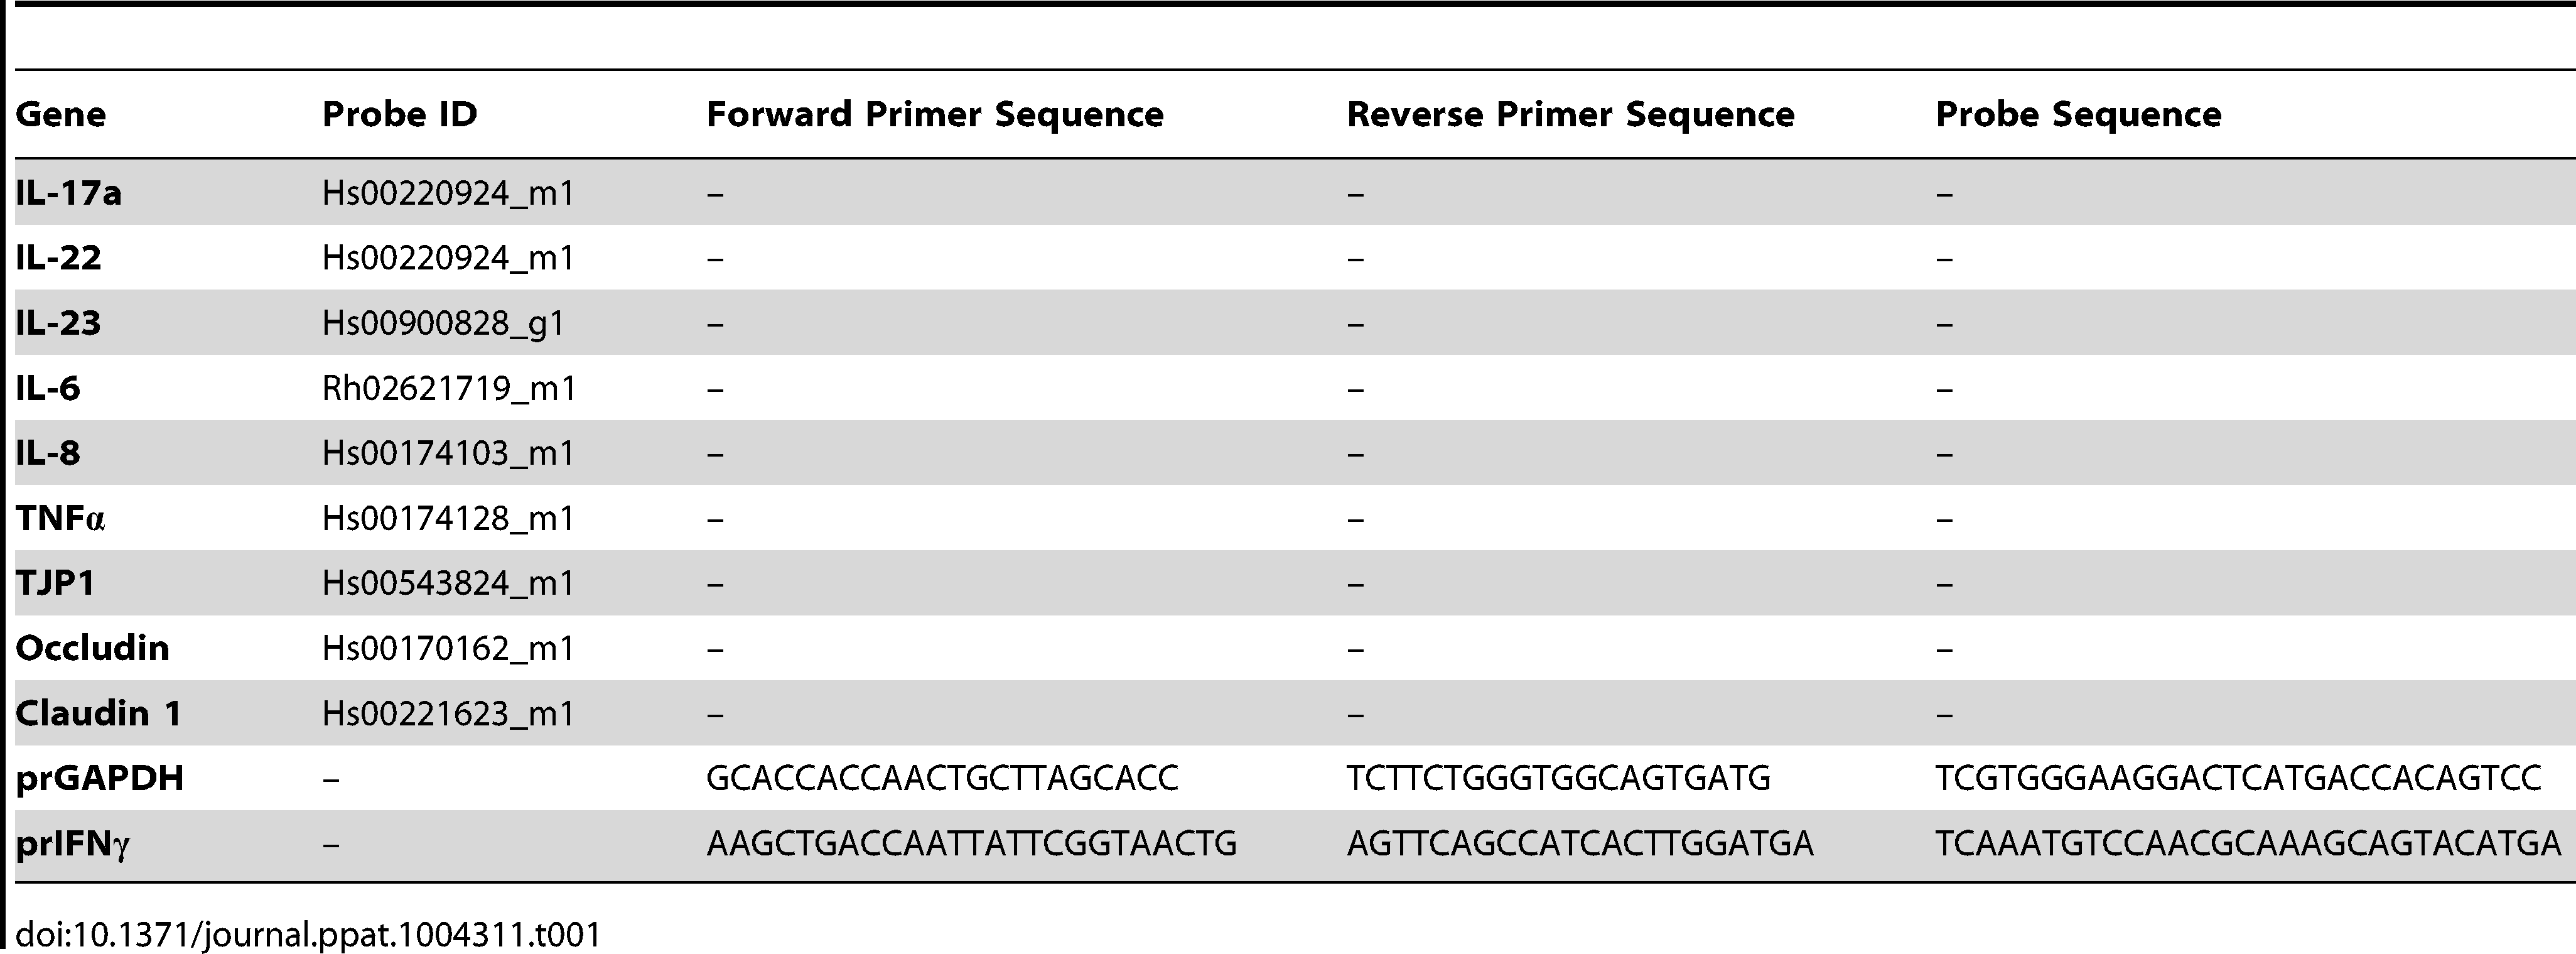 RT-PCR gene primer sequences and probe IDs.